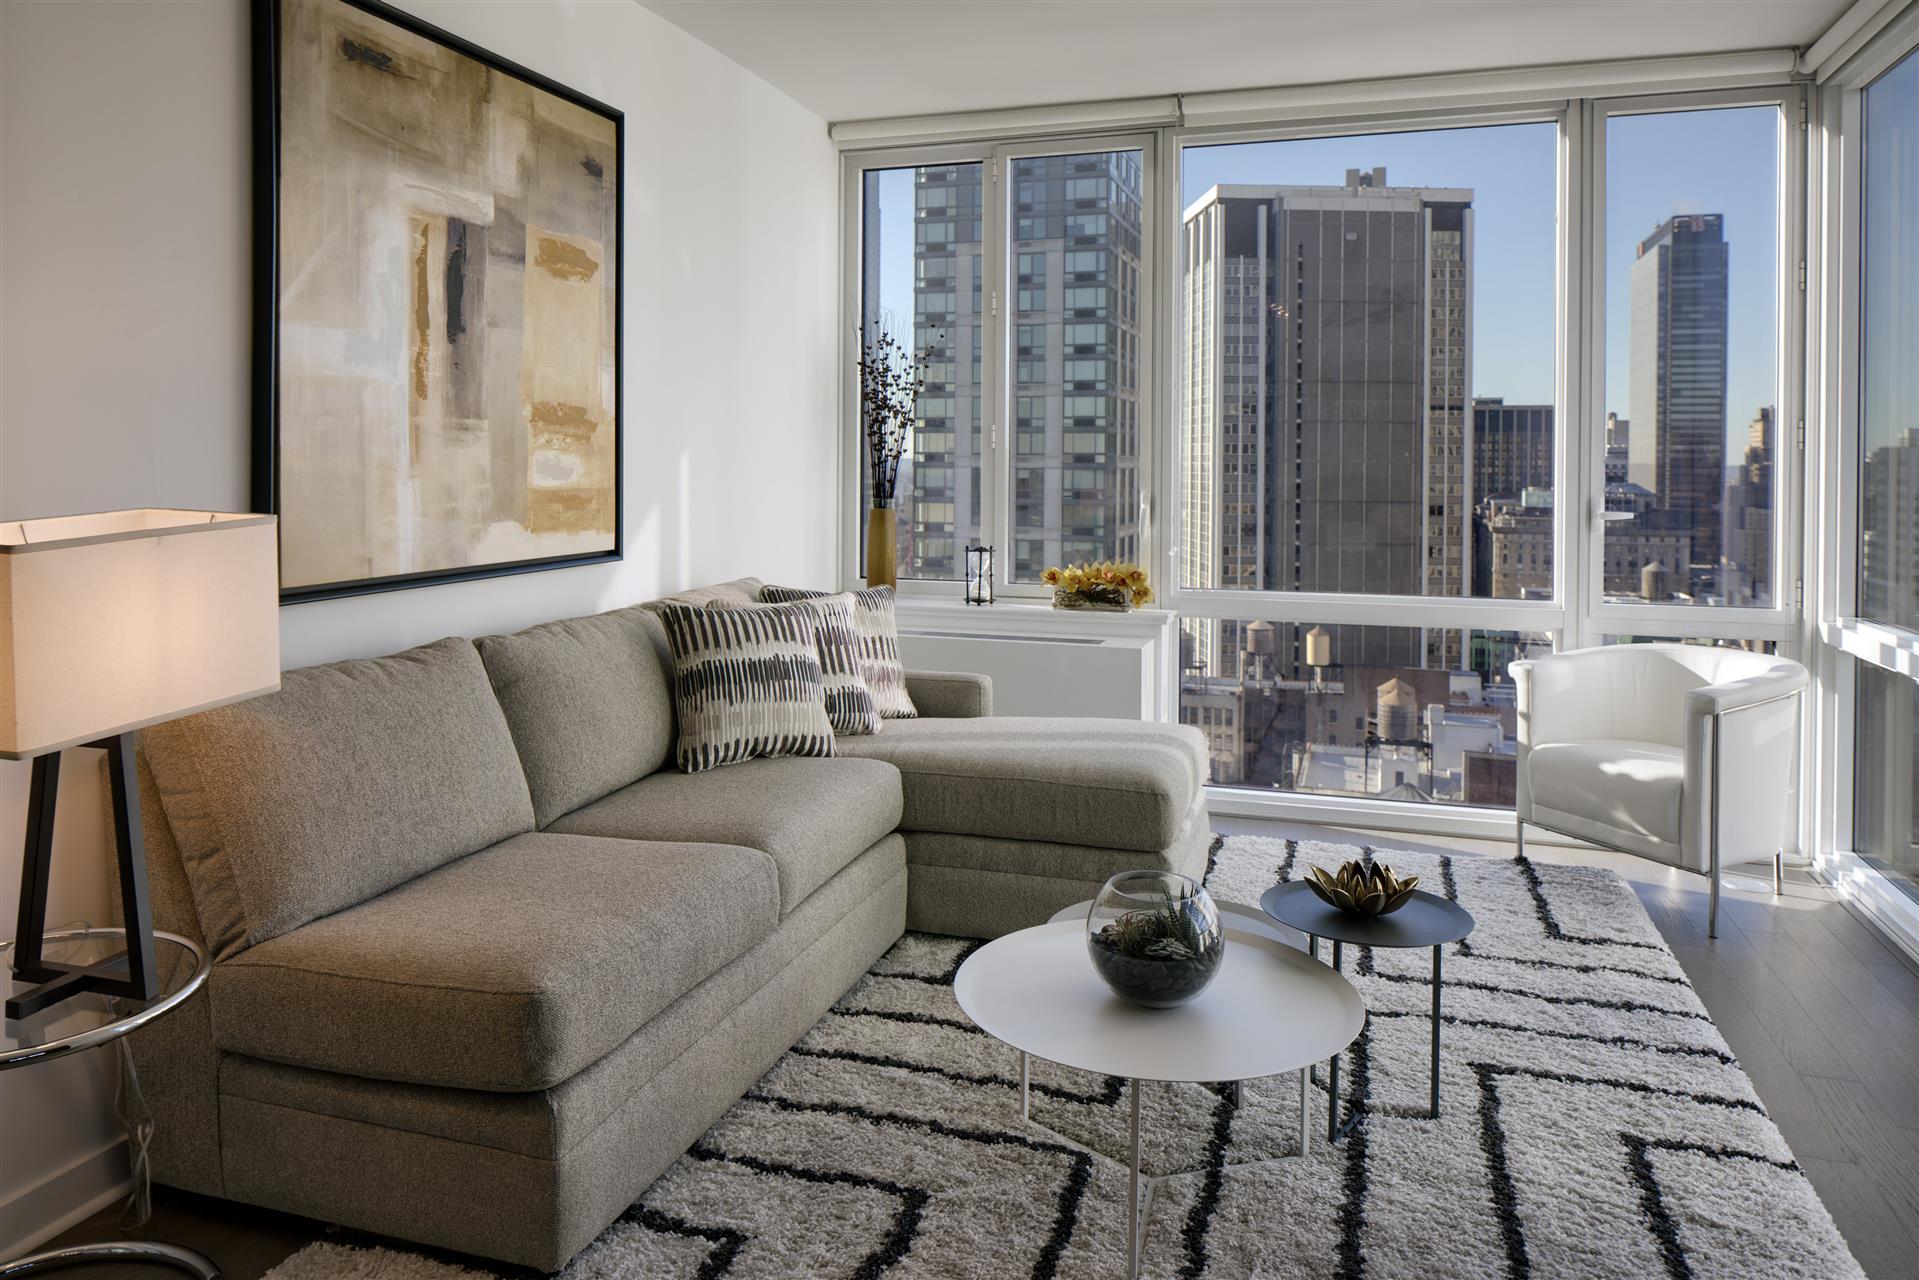 Rentals for Rent at The Dylan, Flatiron District New York, New York 10016 United States